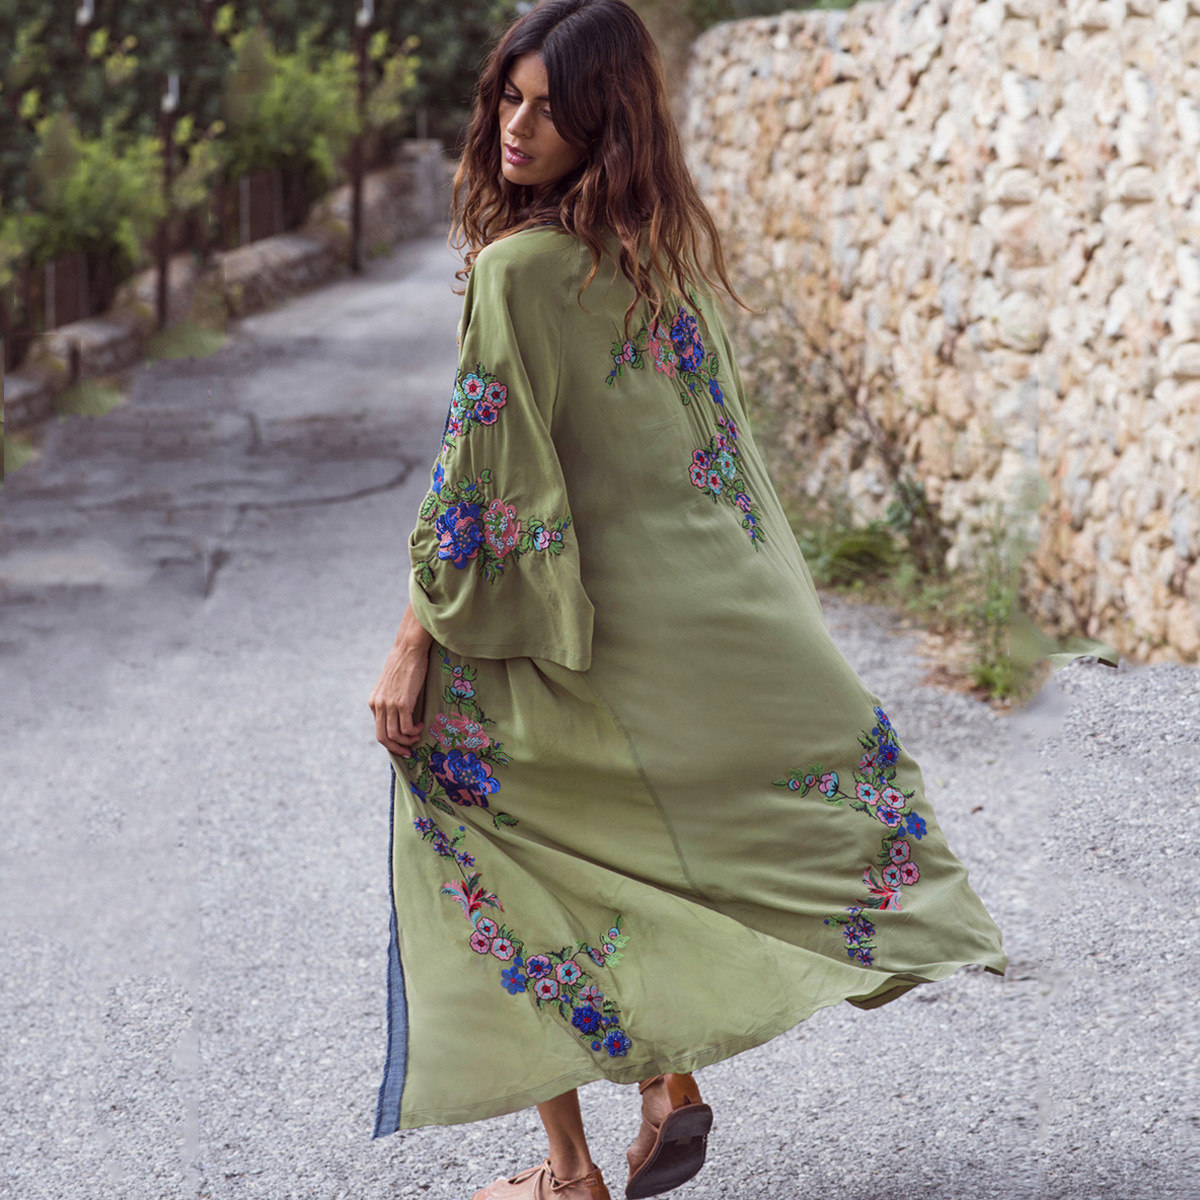 Jastie 2019 Spring Summer Cardigan Jacket Boho Floral Embroidery Shirt Top Casual Beach Long Cardigans Long